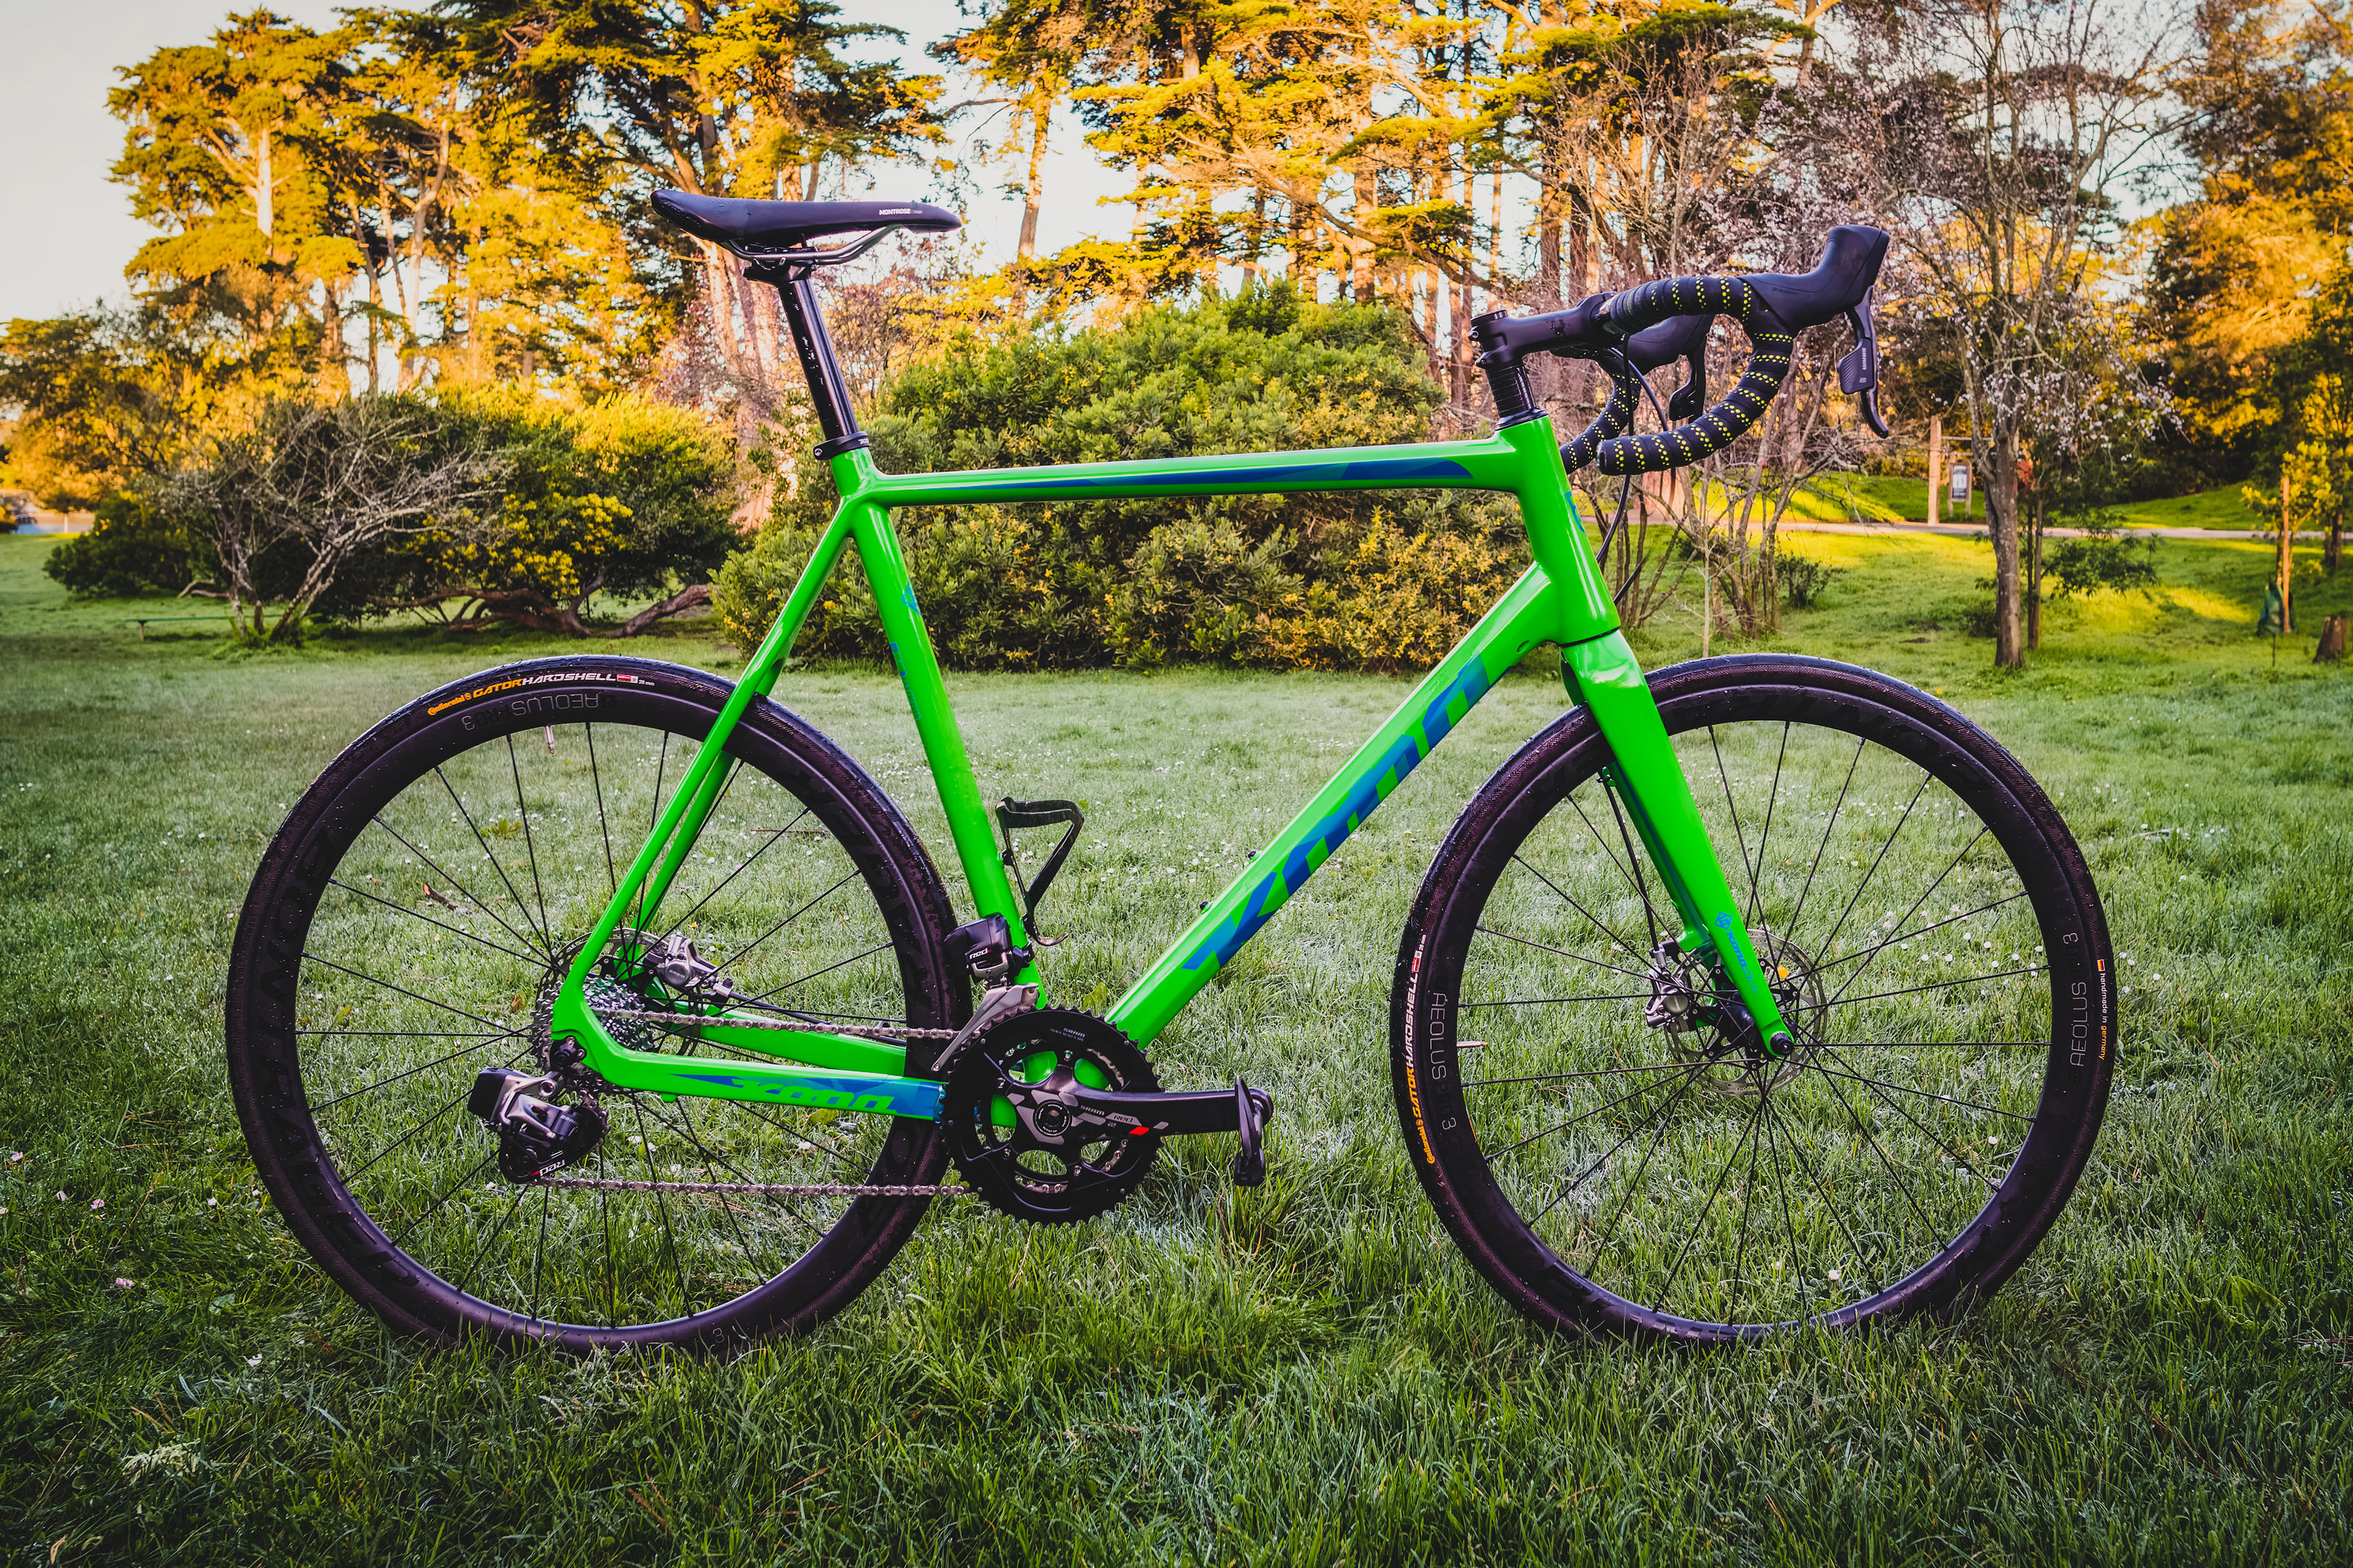 Kona Dream Builds: Steve's Jake the Snake CR is a Sign From the Gods